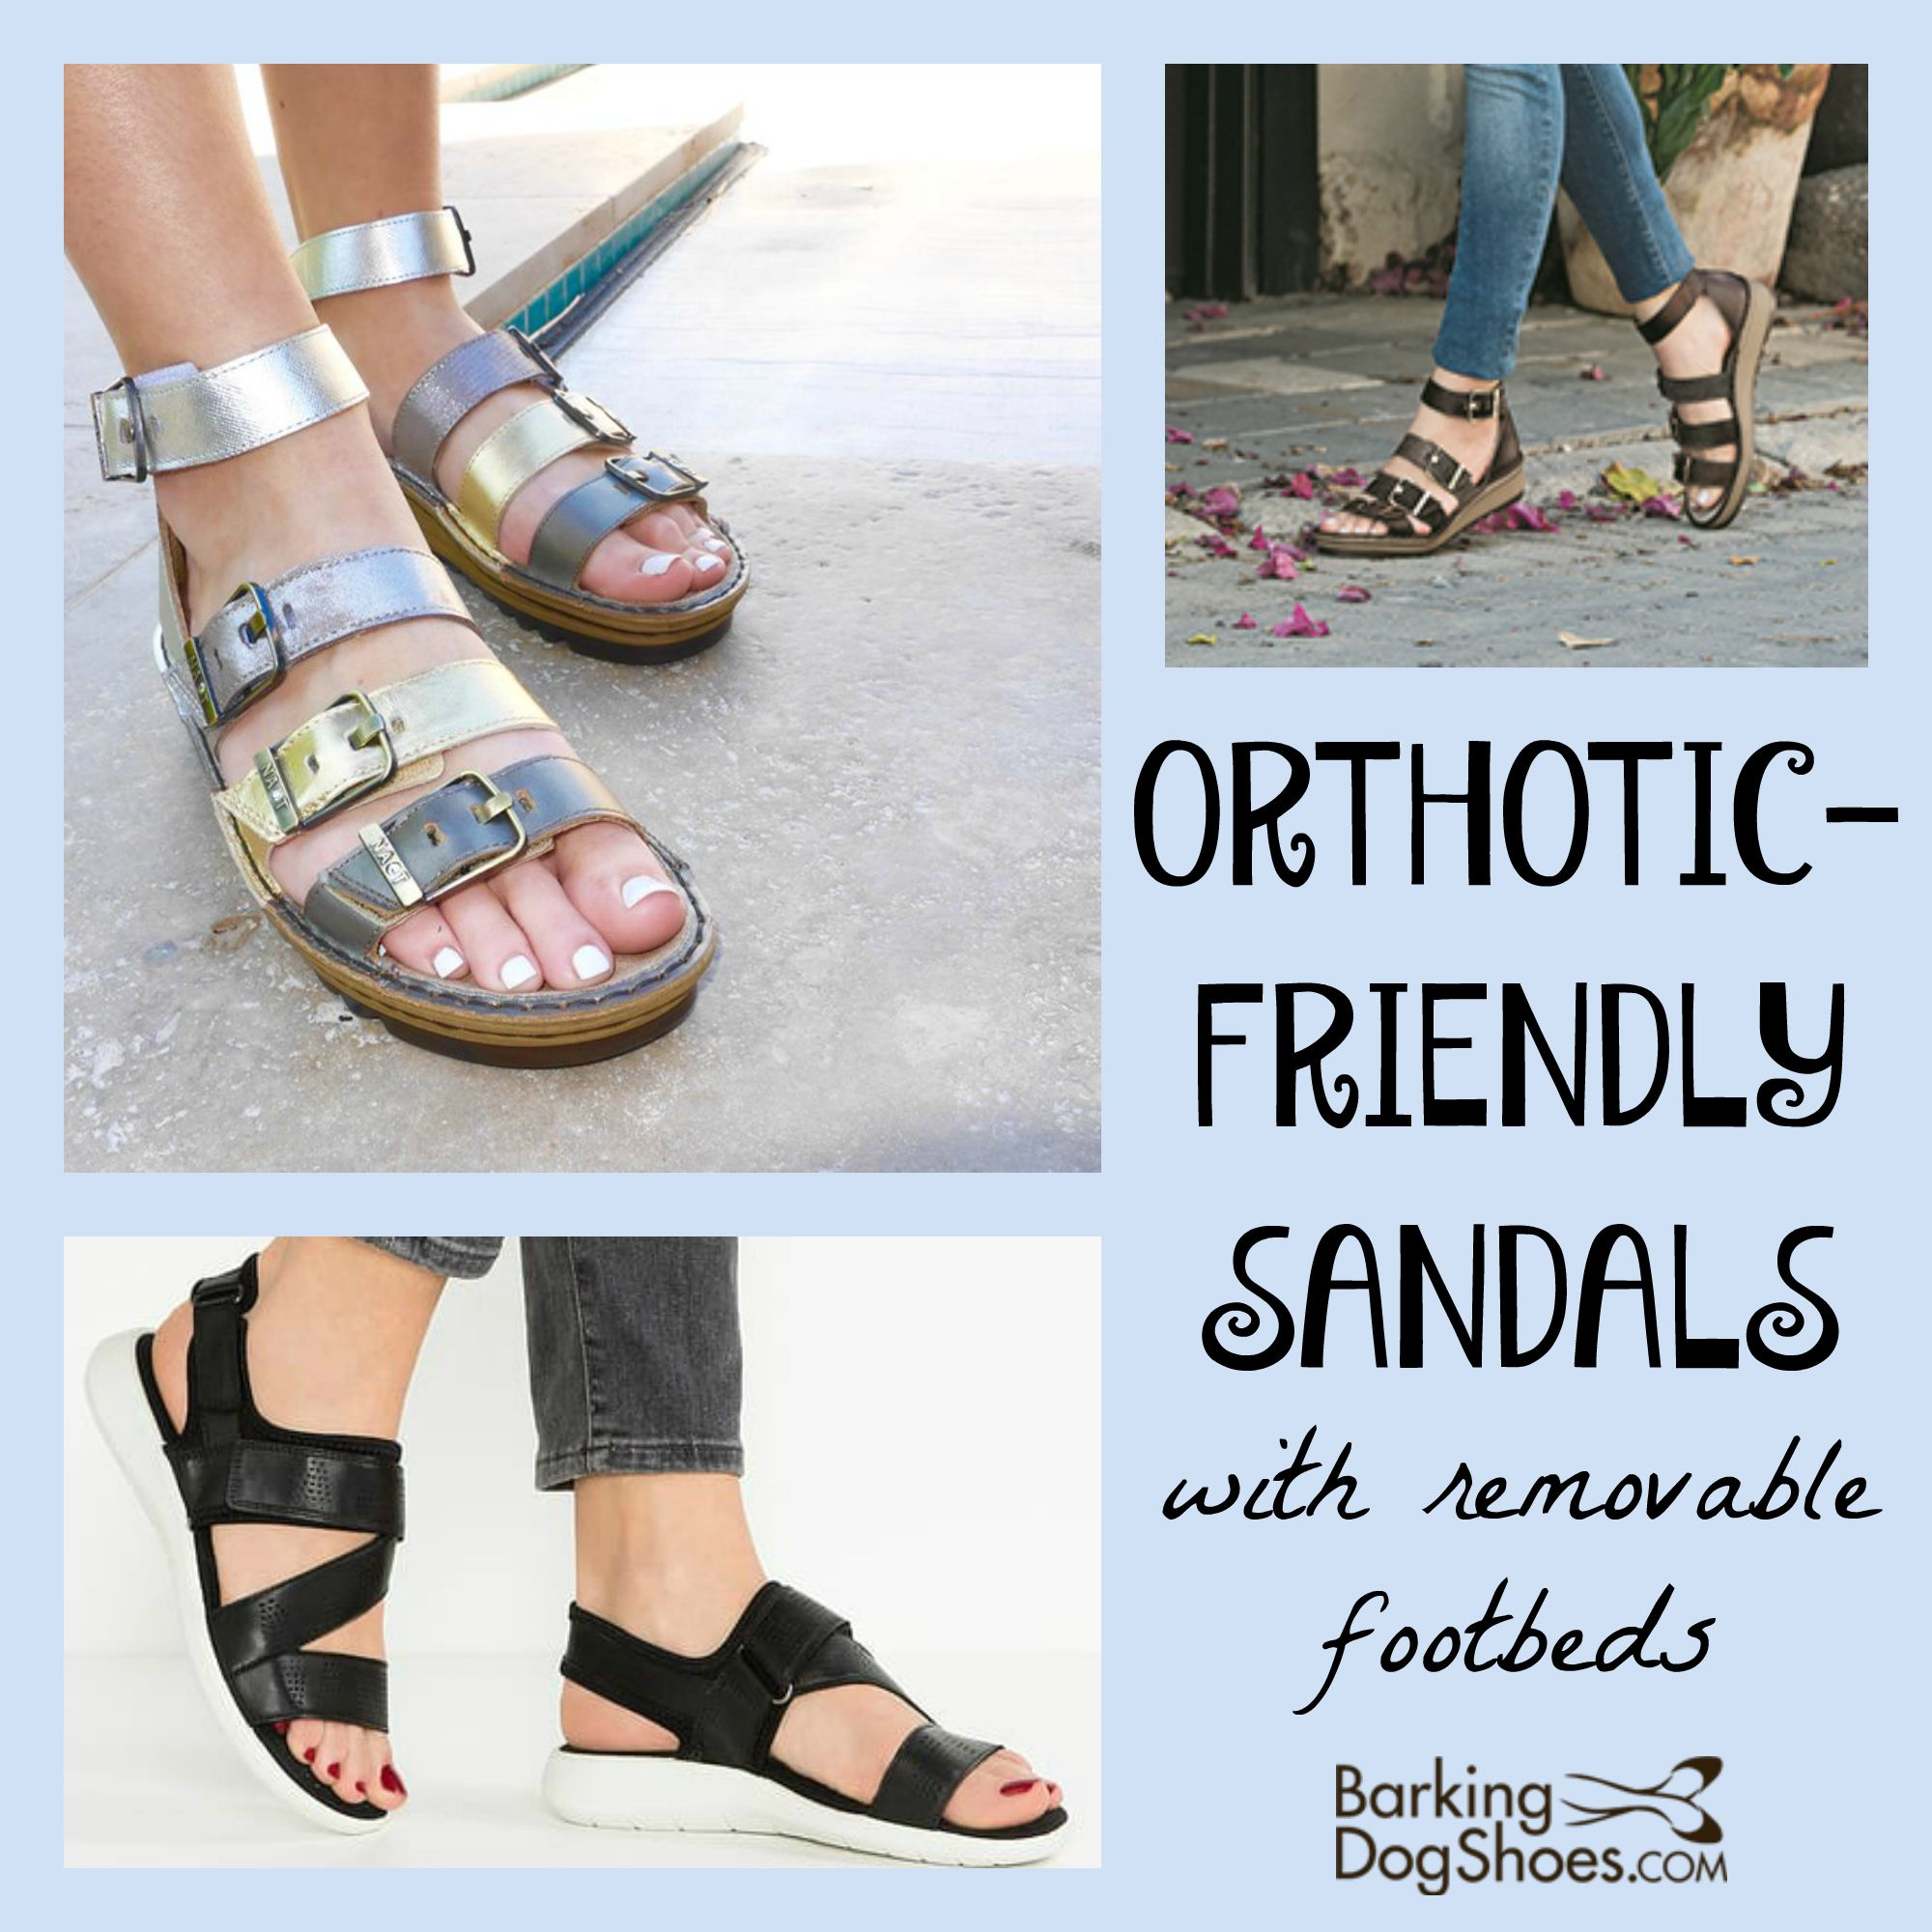 Women's sandals with removable insoles - 5 Stylish Orthotic Friendly Sandals With Removable Footbeds